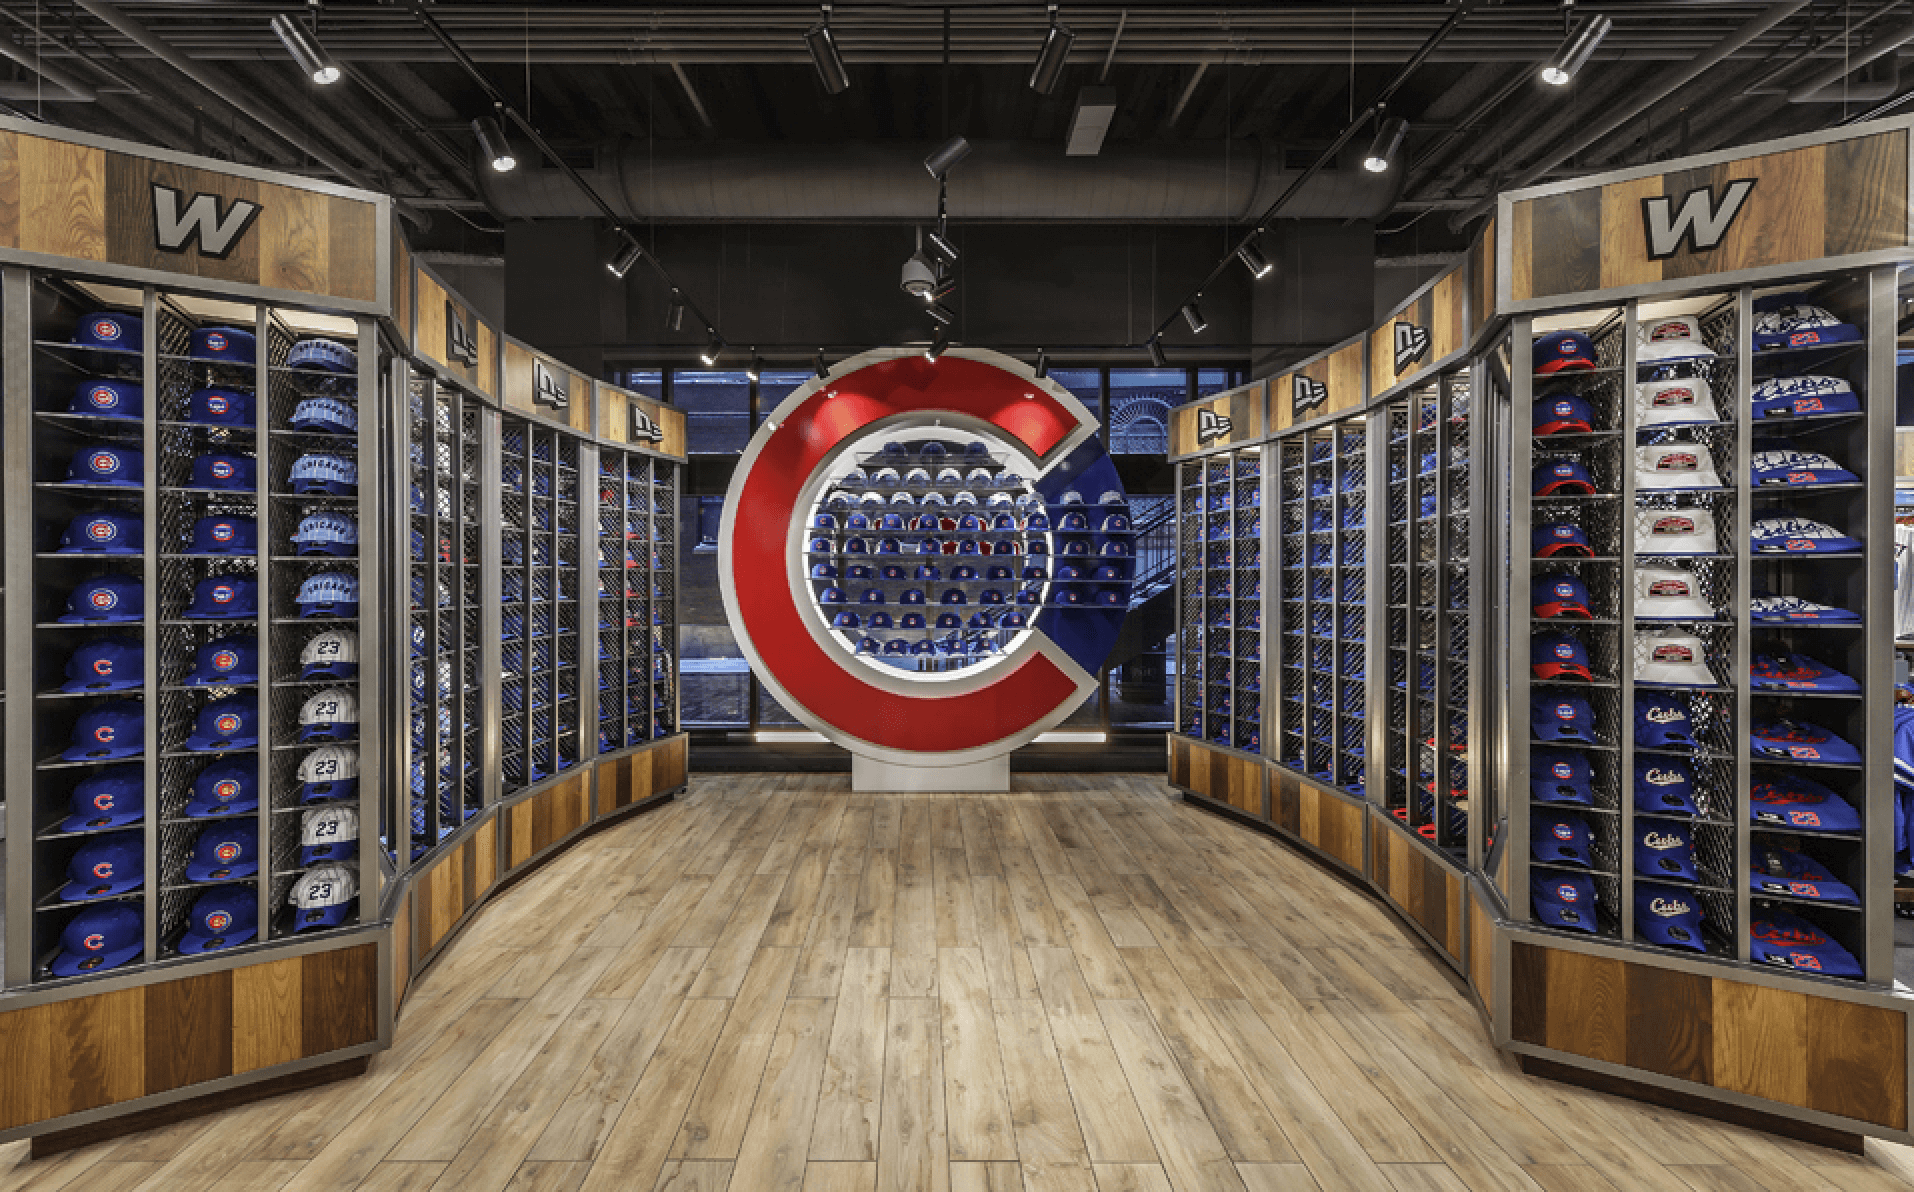 Cubs Team Store - The two-story flagship store holds everything from baseball hats to memorabilia including carefully crafted collections, a customization bar for personalizing items and fan-favorite apparel.3637 N Clark StreetChicago, IL 60613773-975-3636